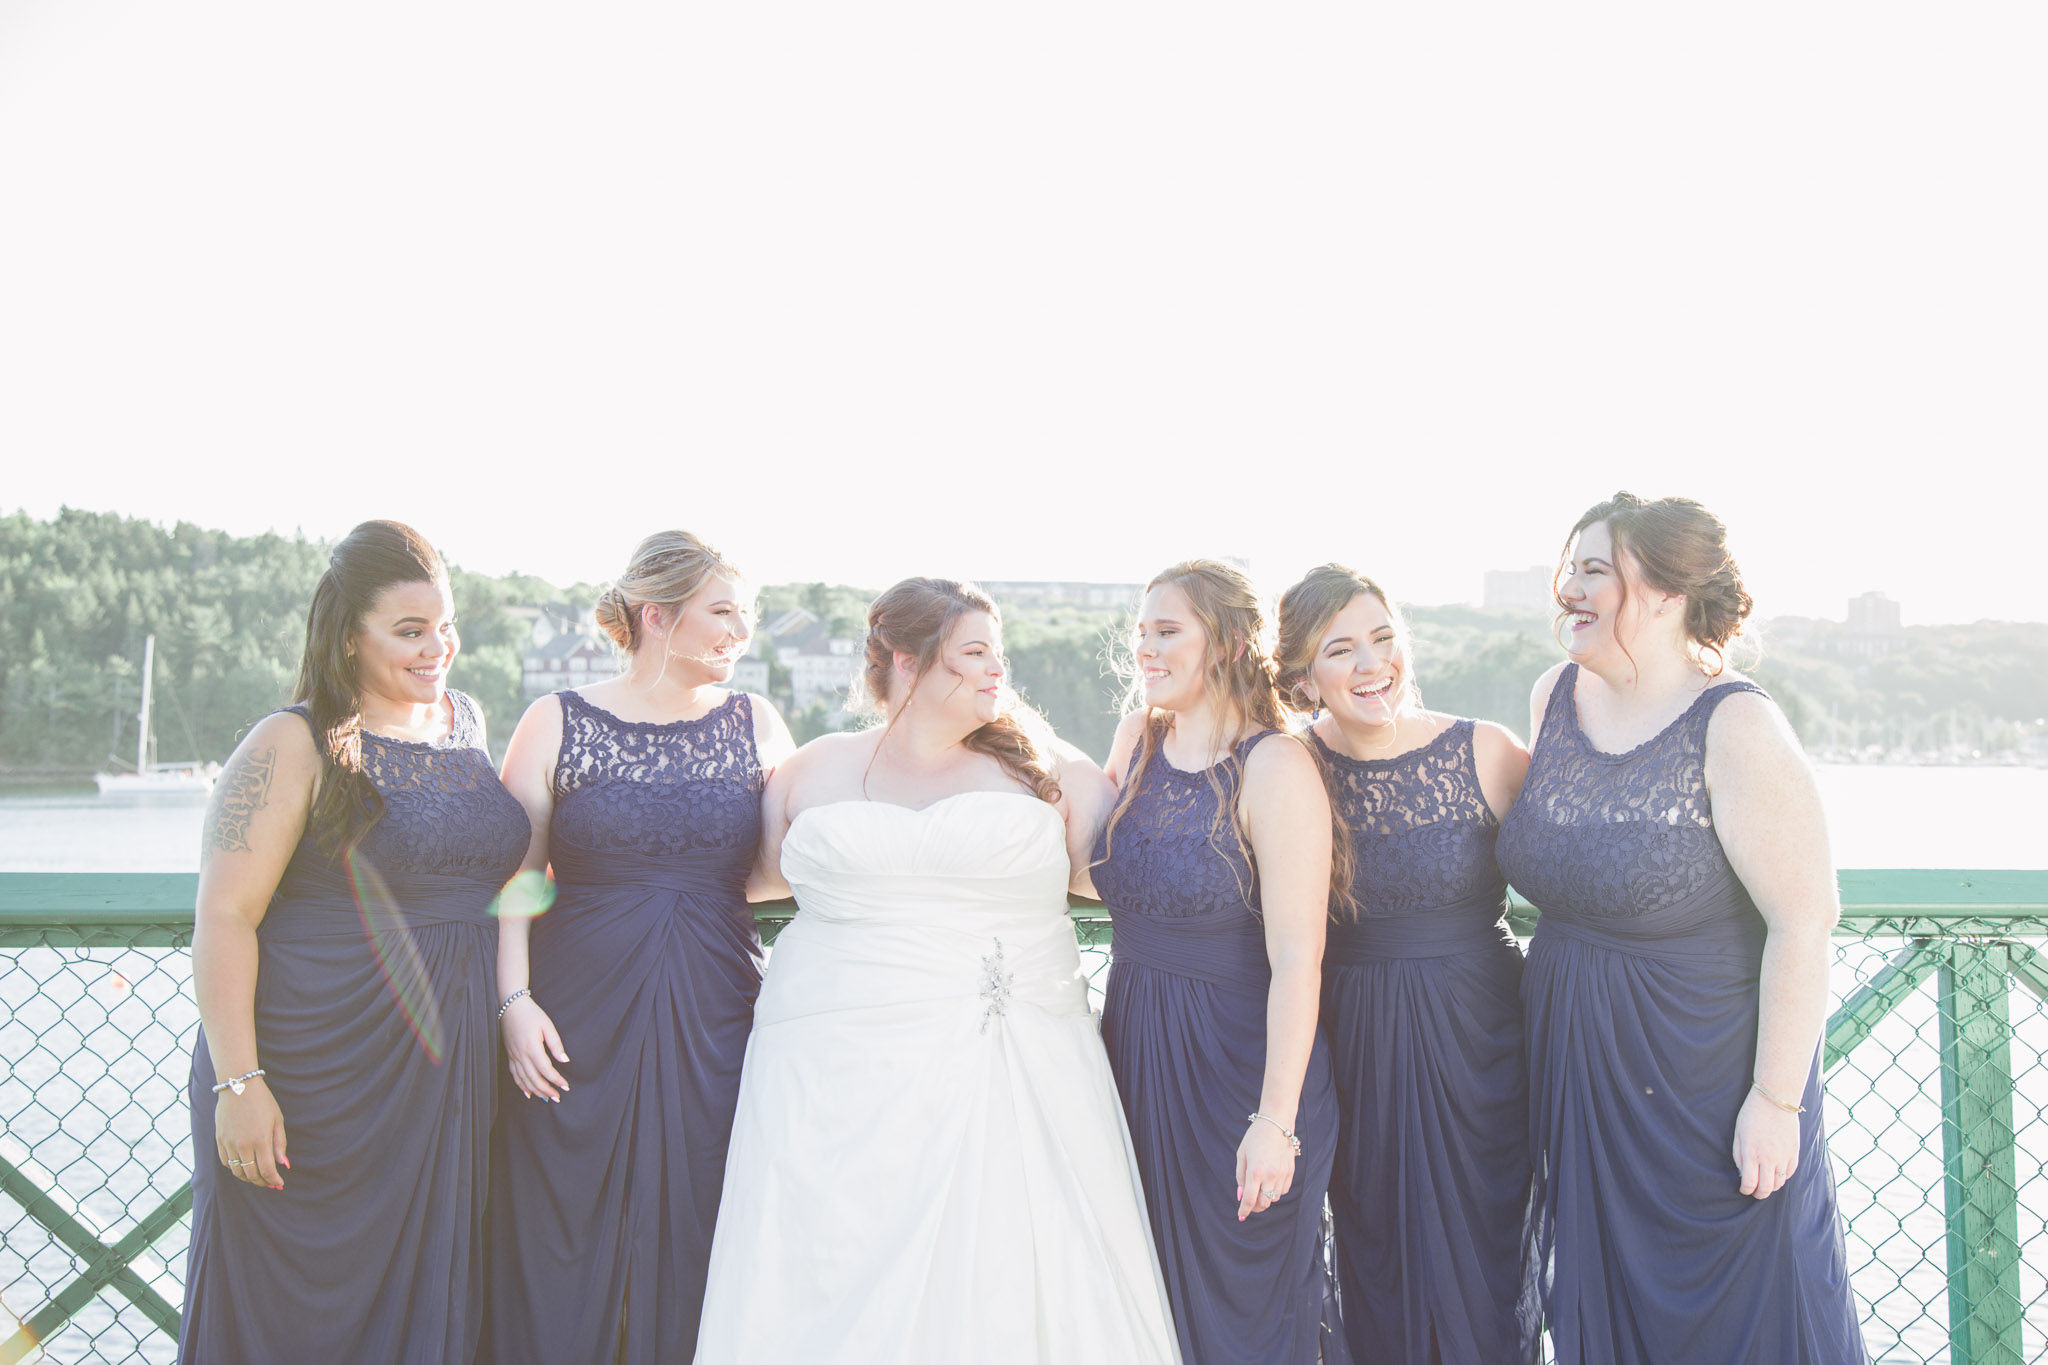 Image of bride and bridesmaids laughing during wedding photography session